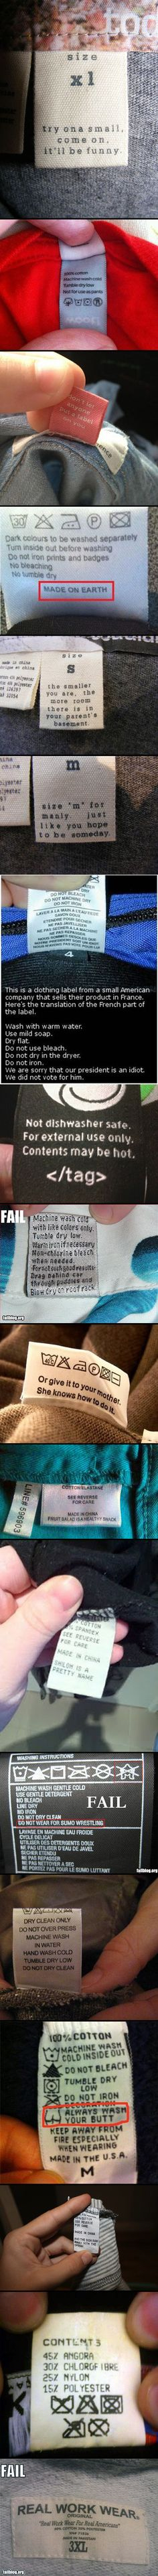 are some bizarre, yet real, clothing tags that make absolutely no sense. My favorite is the President one. Clothing Tags, Haha Funny, Laughing So Hard, Laugh Out Loud, Make Me Smile, Nerdy, Laughter, Geek Stuff, Just For You